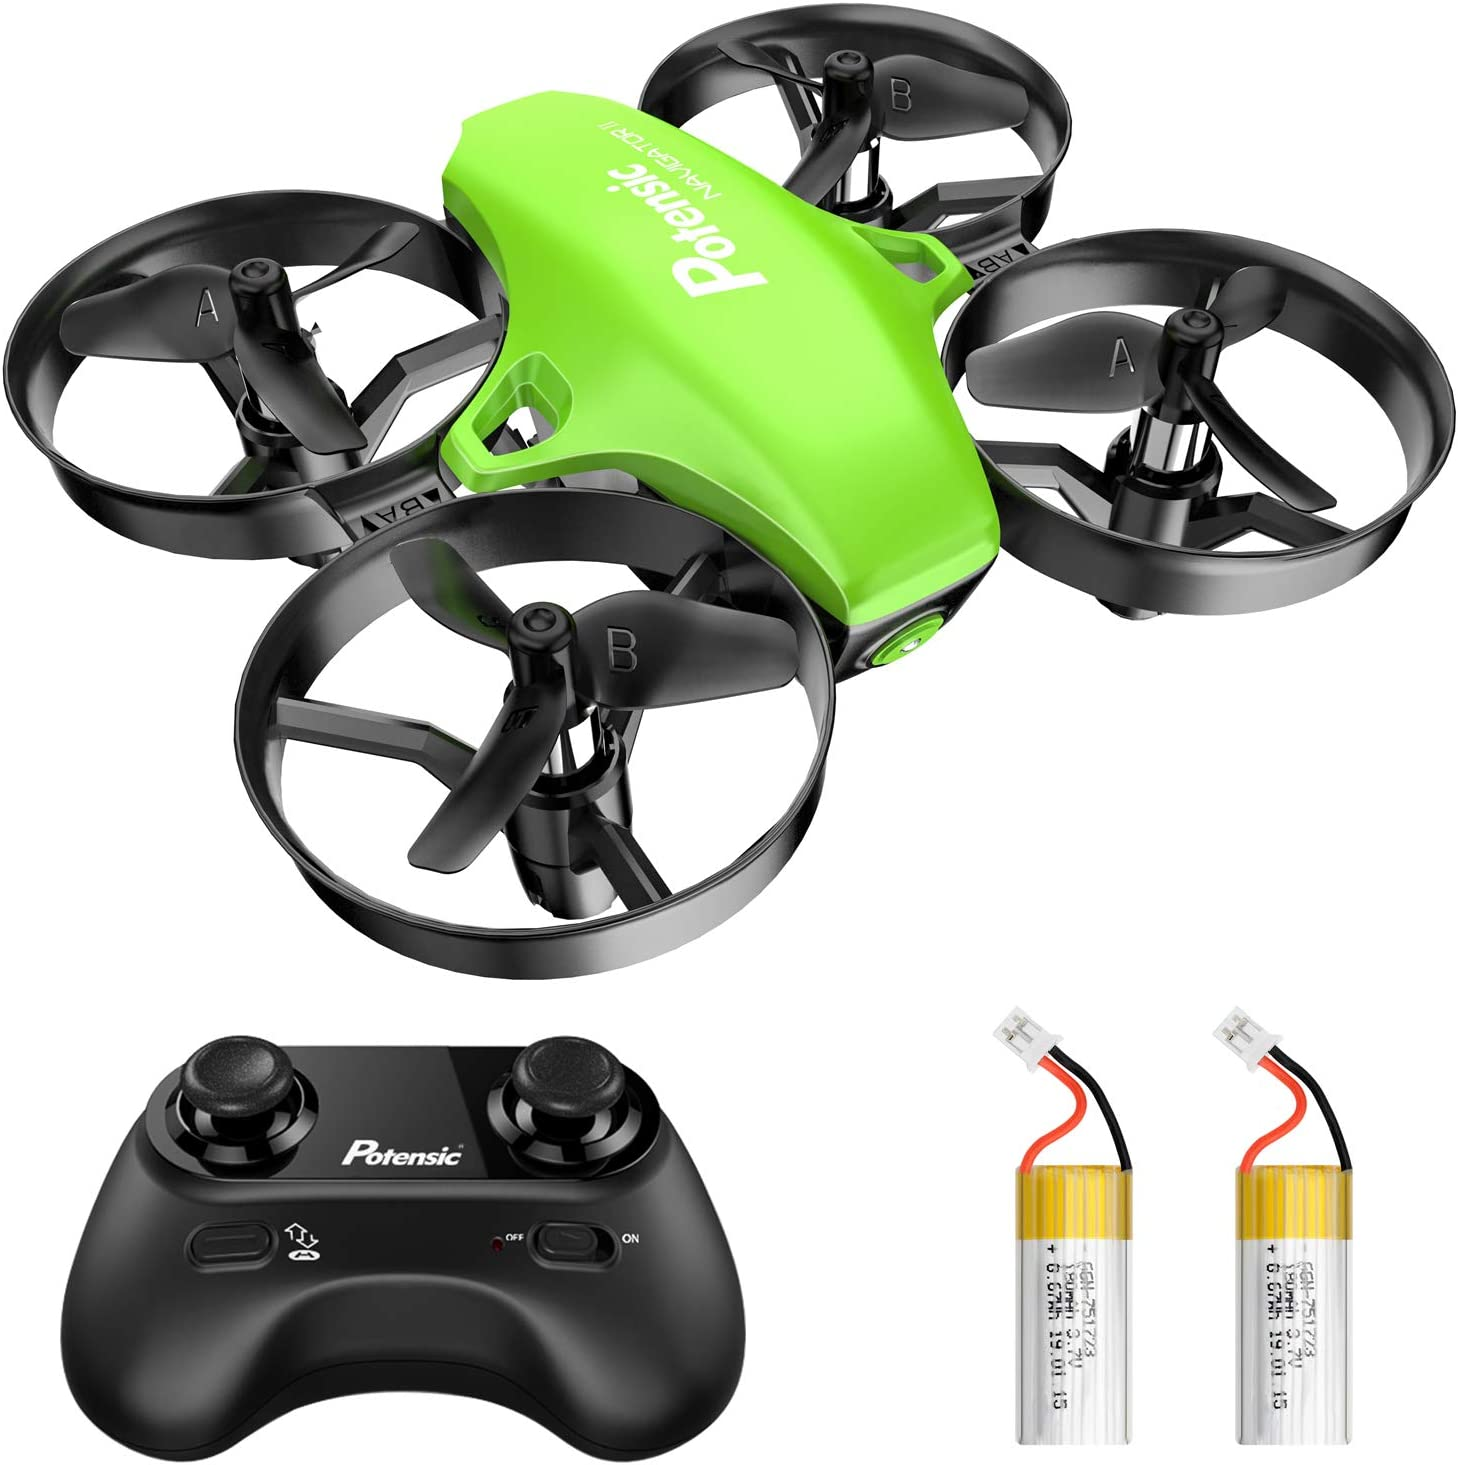 potensic toy drone